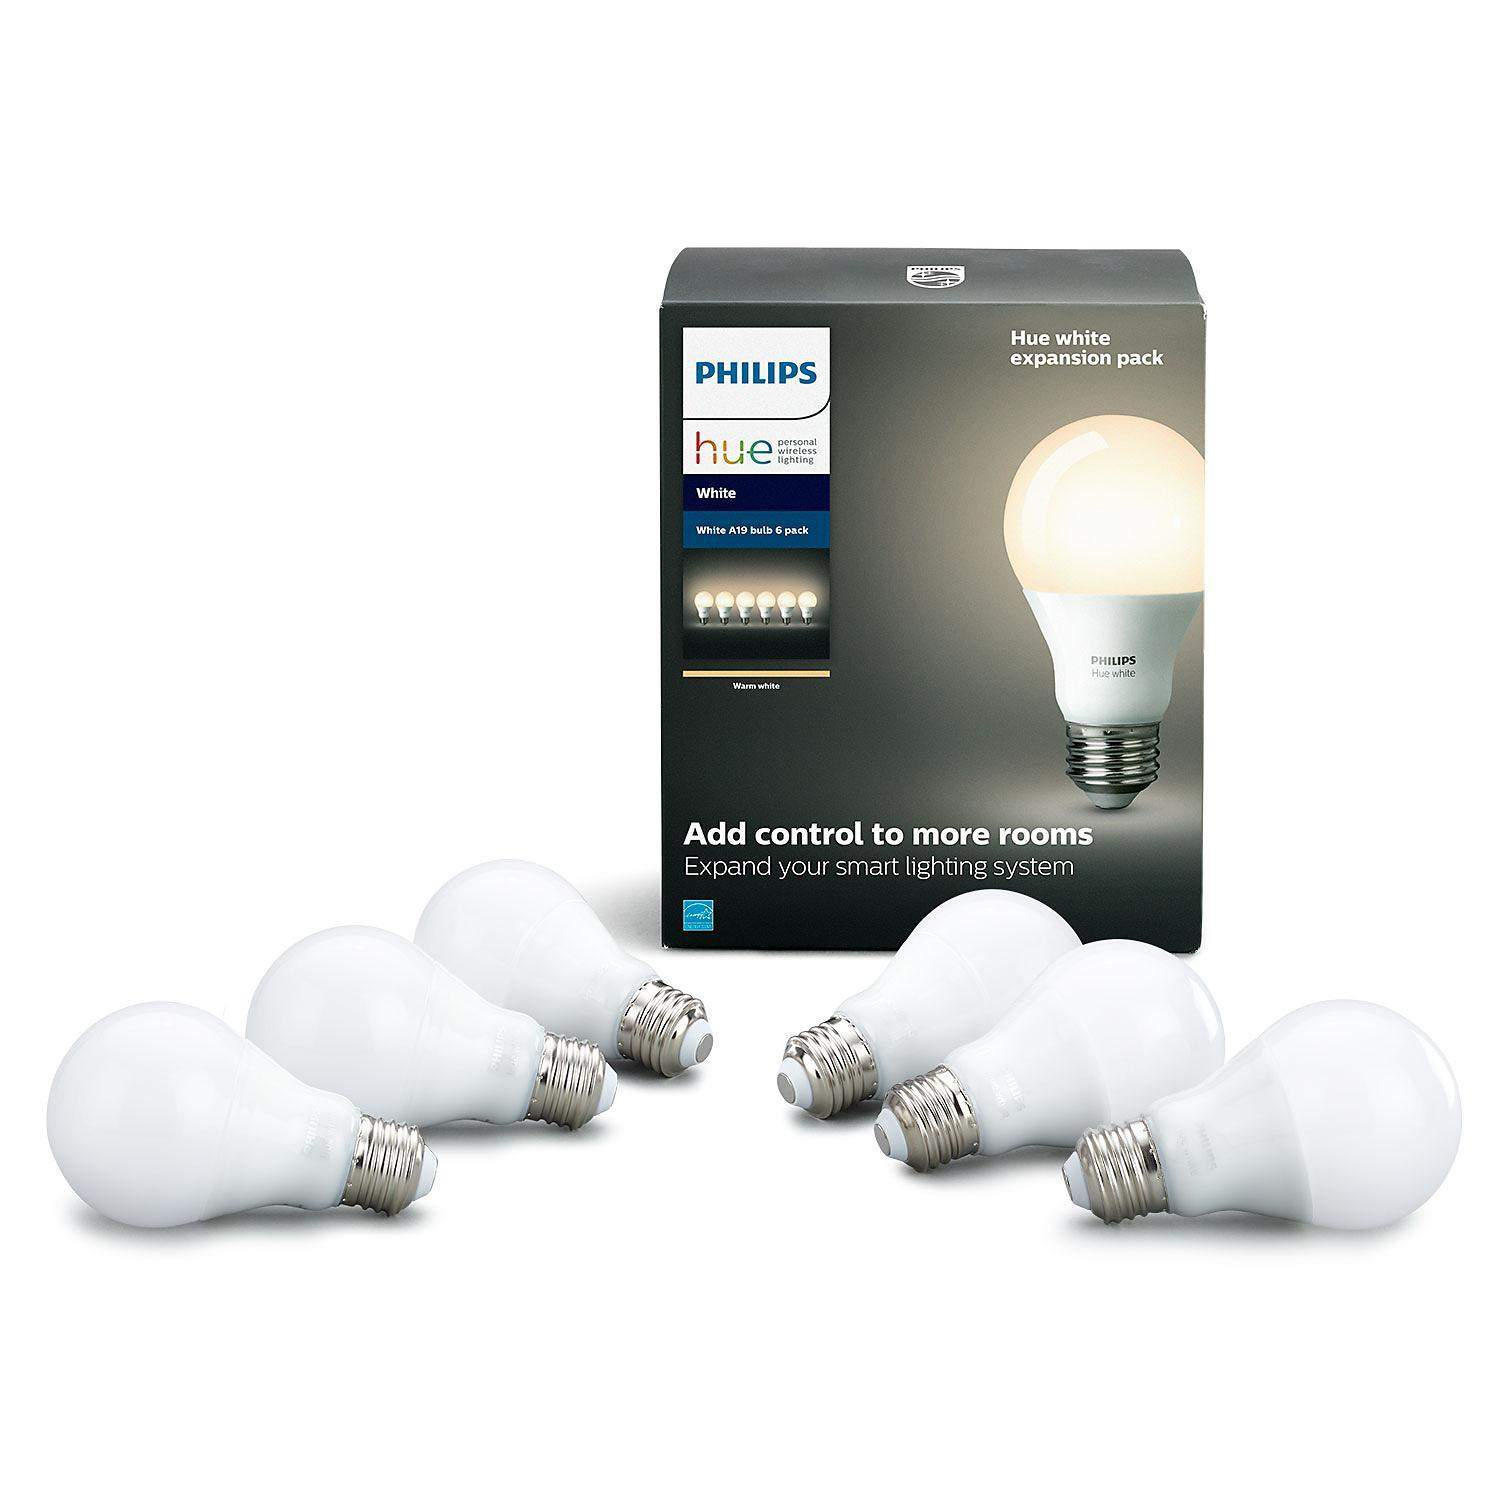 Philips Hue 6-Pack White Smart Bulb Expansion Pack - $29.81 YMMV